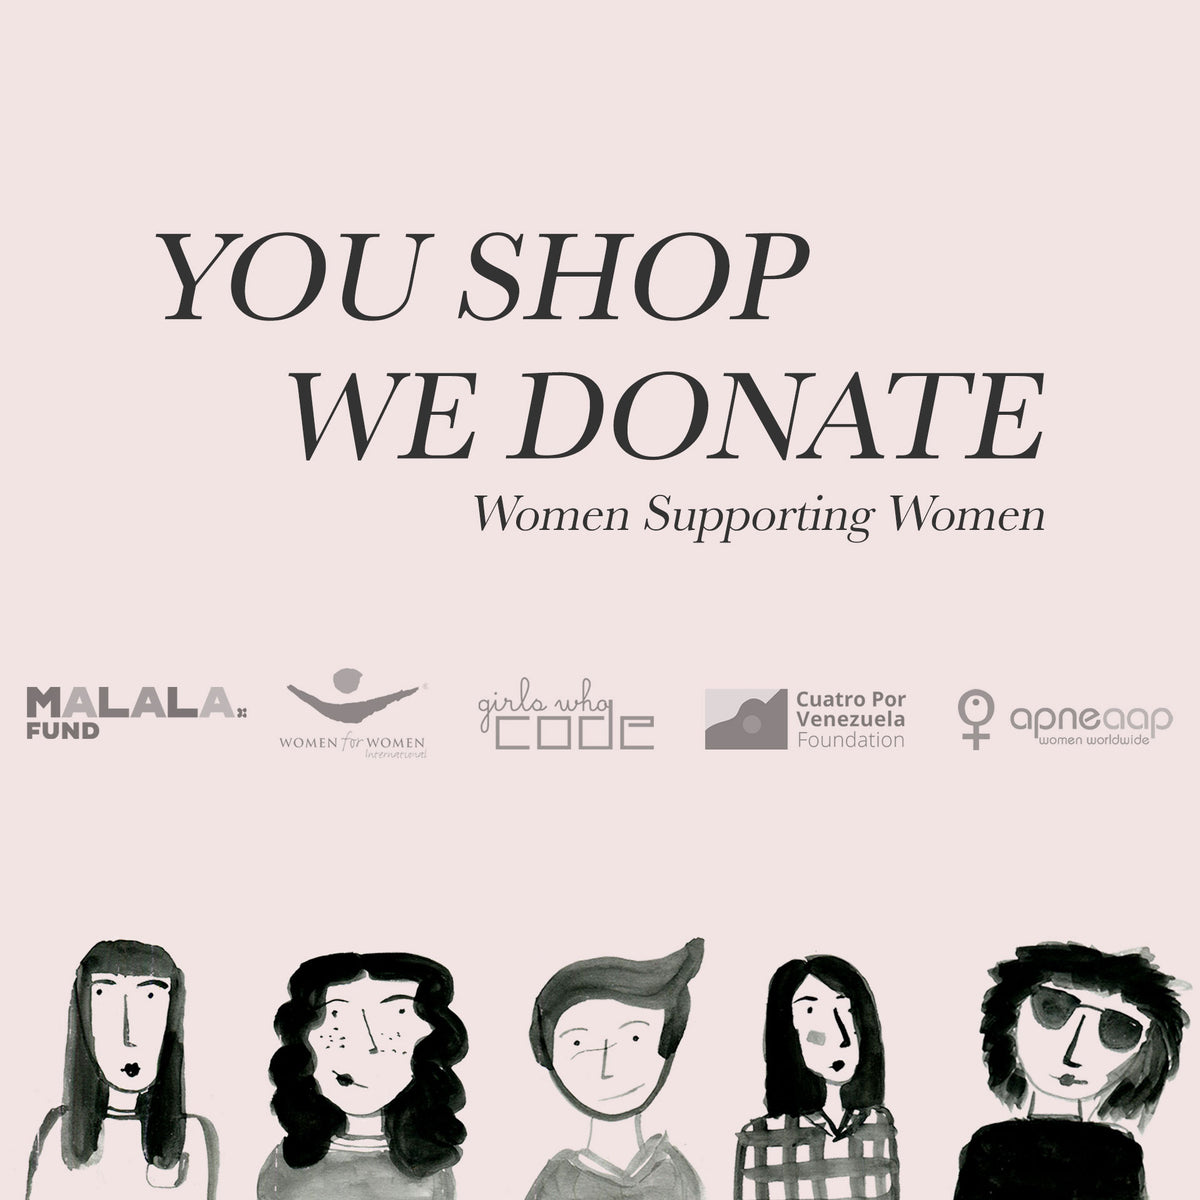 Sosi Leone Socially Conscious, Fashion with purpose, Online Shop Women Supporting Women Malala Fund Women for Women international Girls who code, cuatro por venezuela, apneaap international, shop supporting women